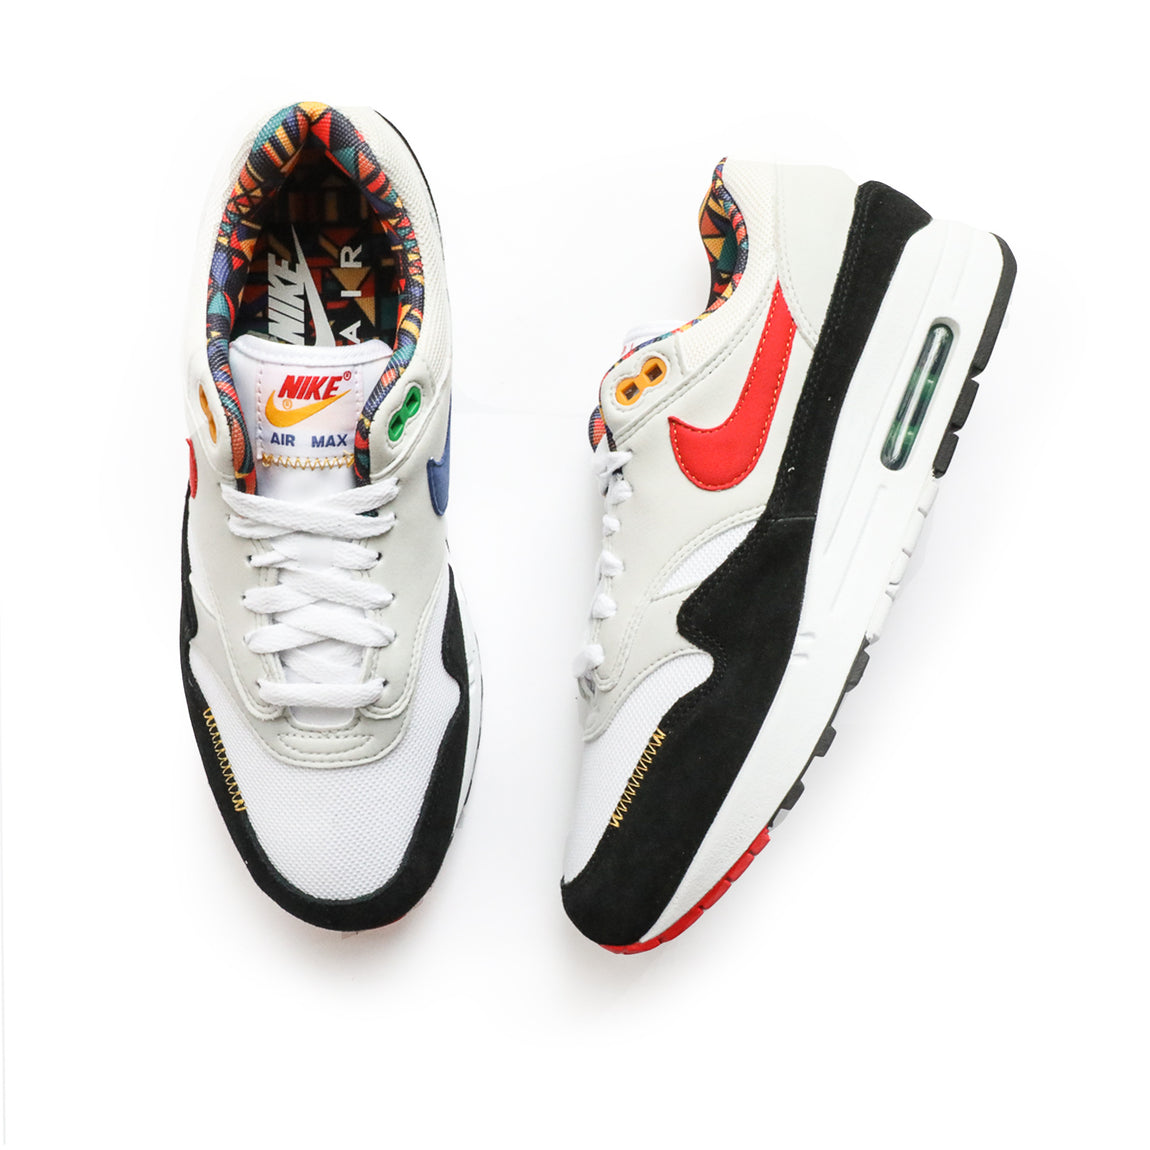 Nike Air Max 1 (White/Chile Red/Photon Dust) - Nike Air Max 1 (White/Chile Red/Photon Dust) -